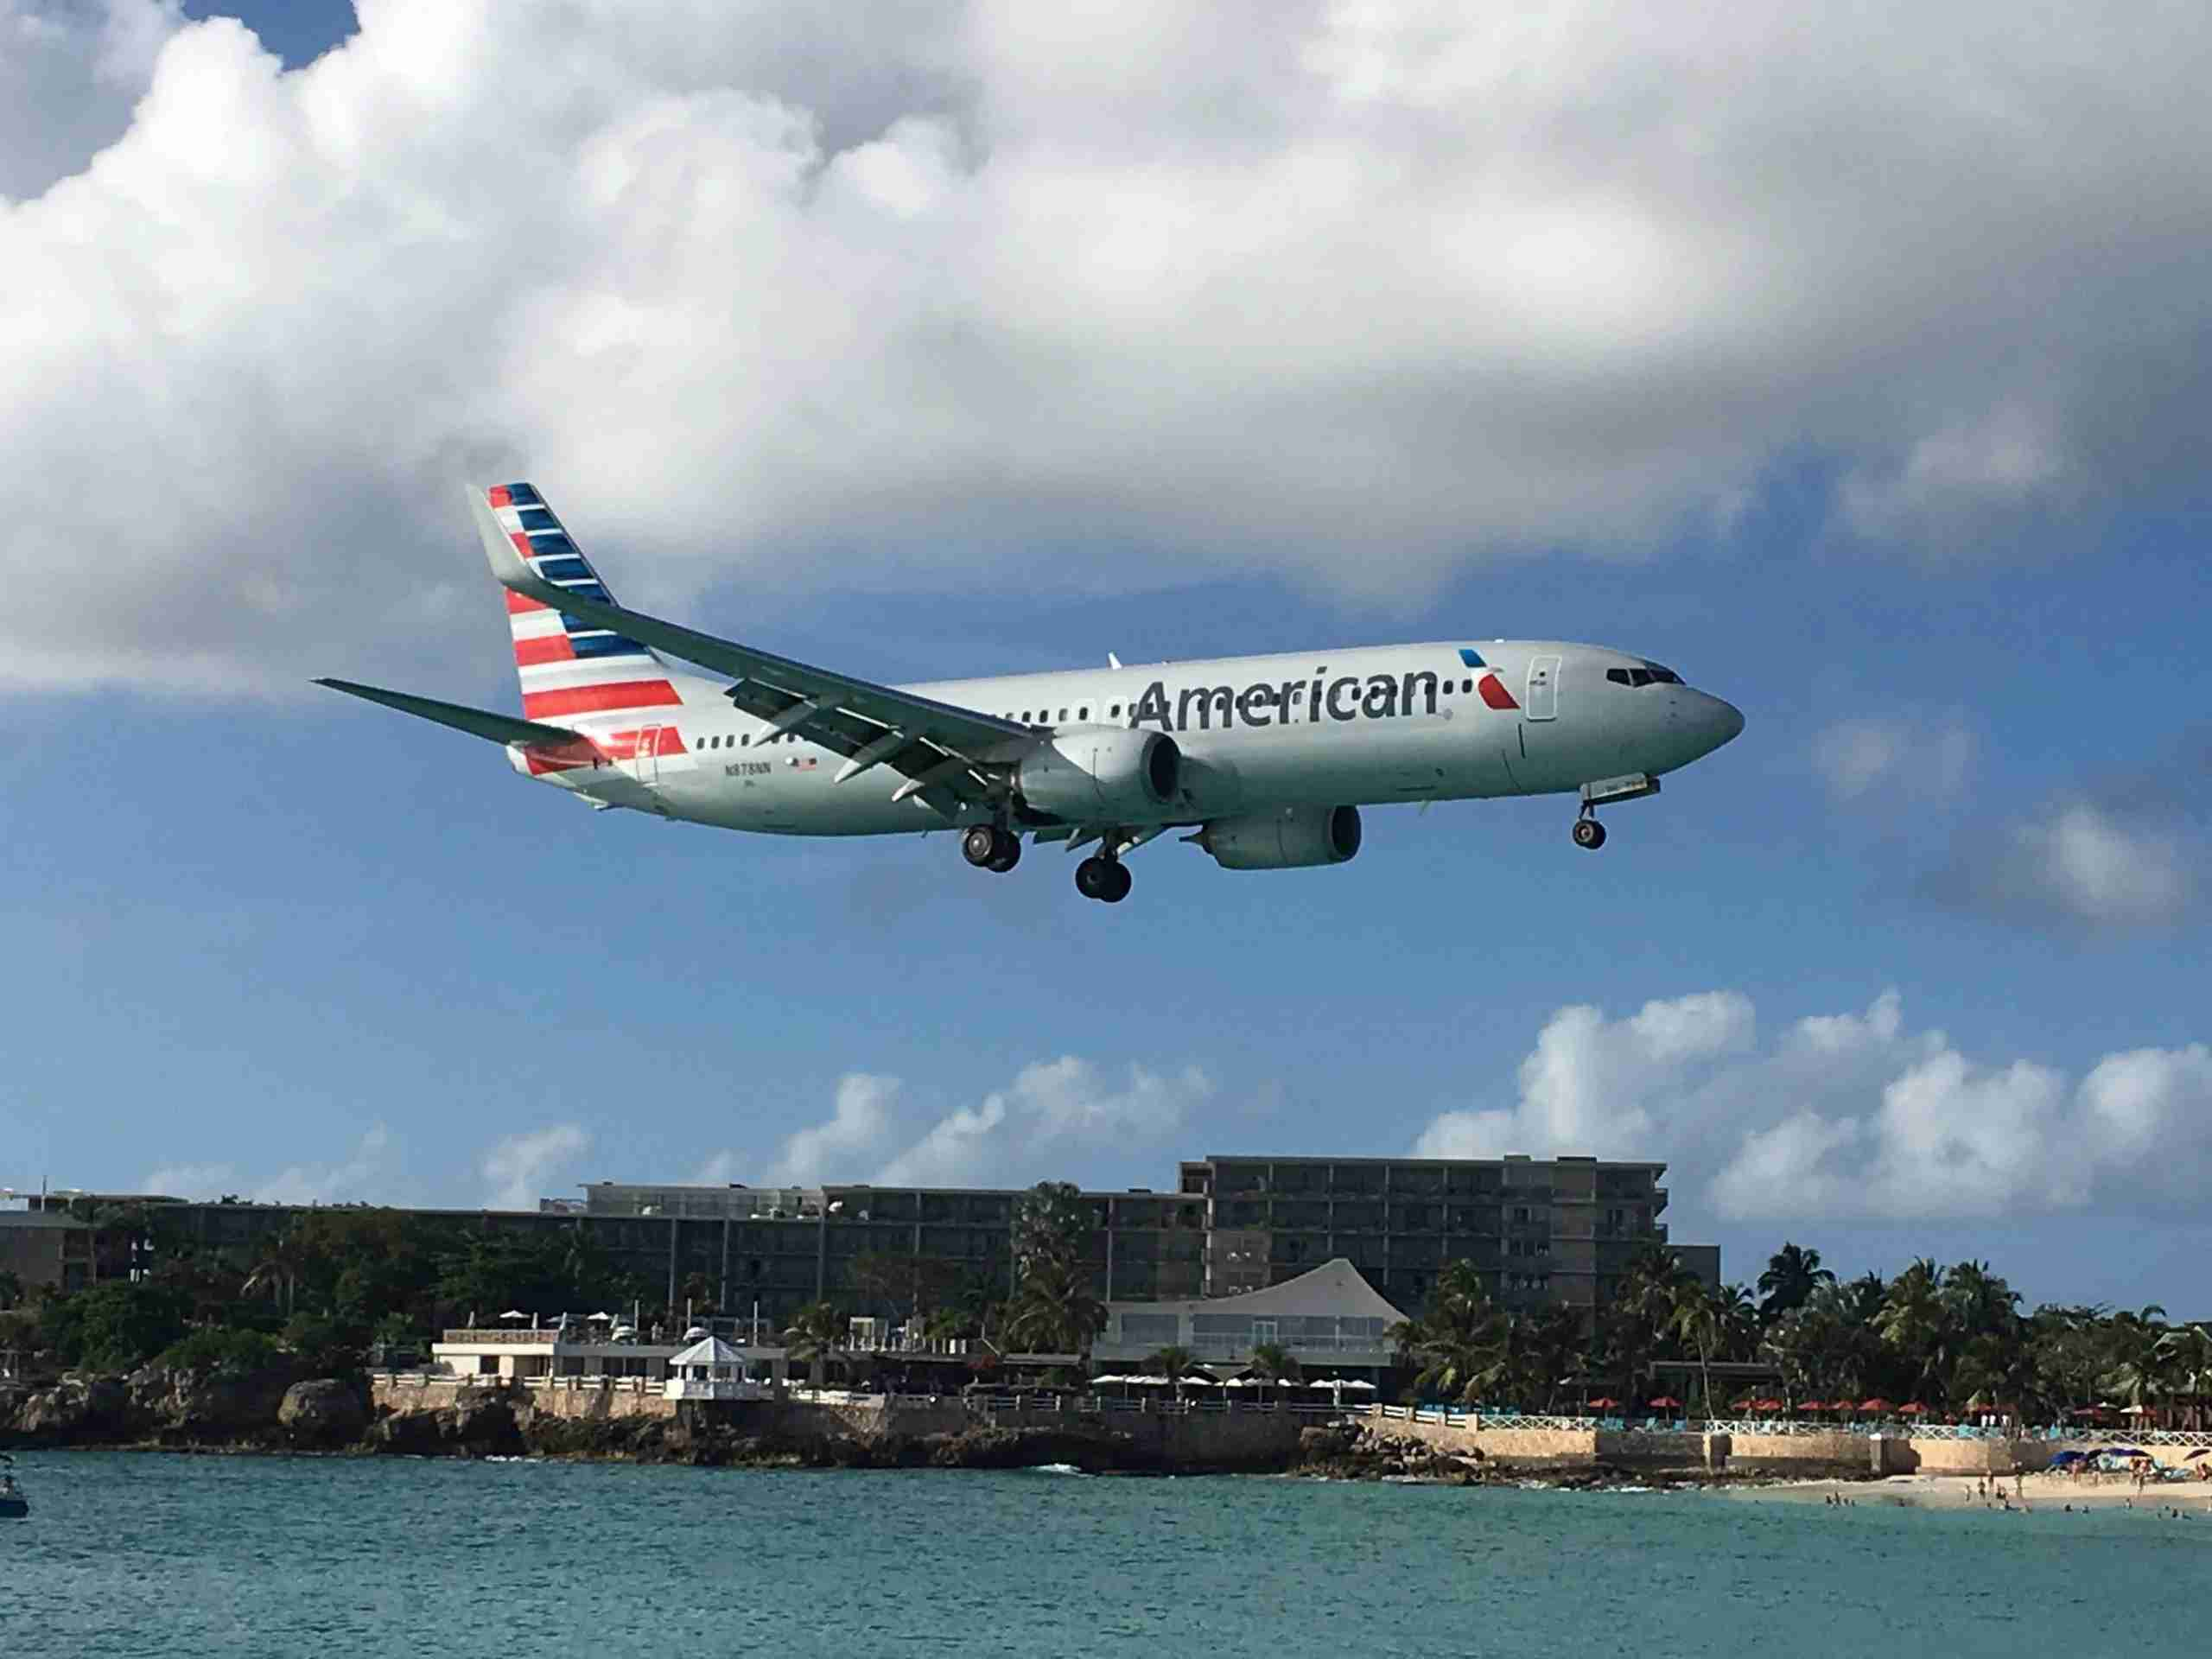 American Airlines plane landing at Sint Maarten Airport (SXM) in January of 2017. (Photo by Clint Henderson/The Points Guy)